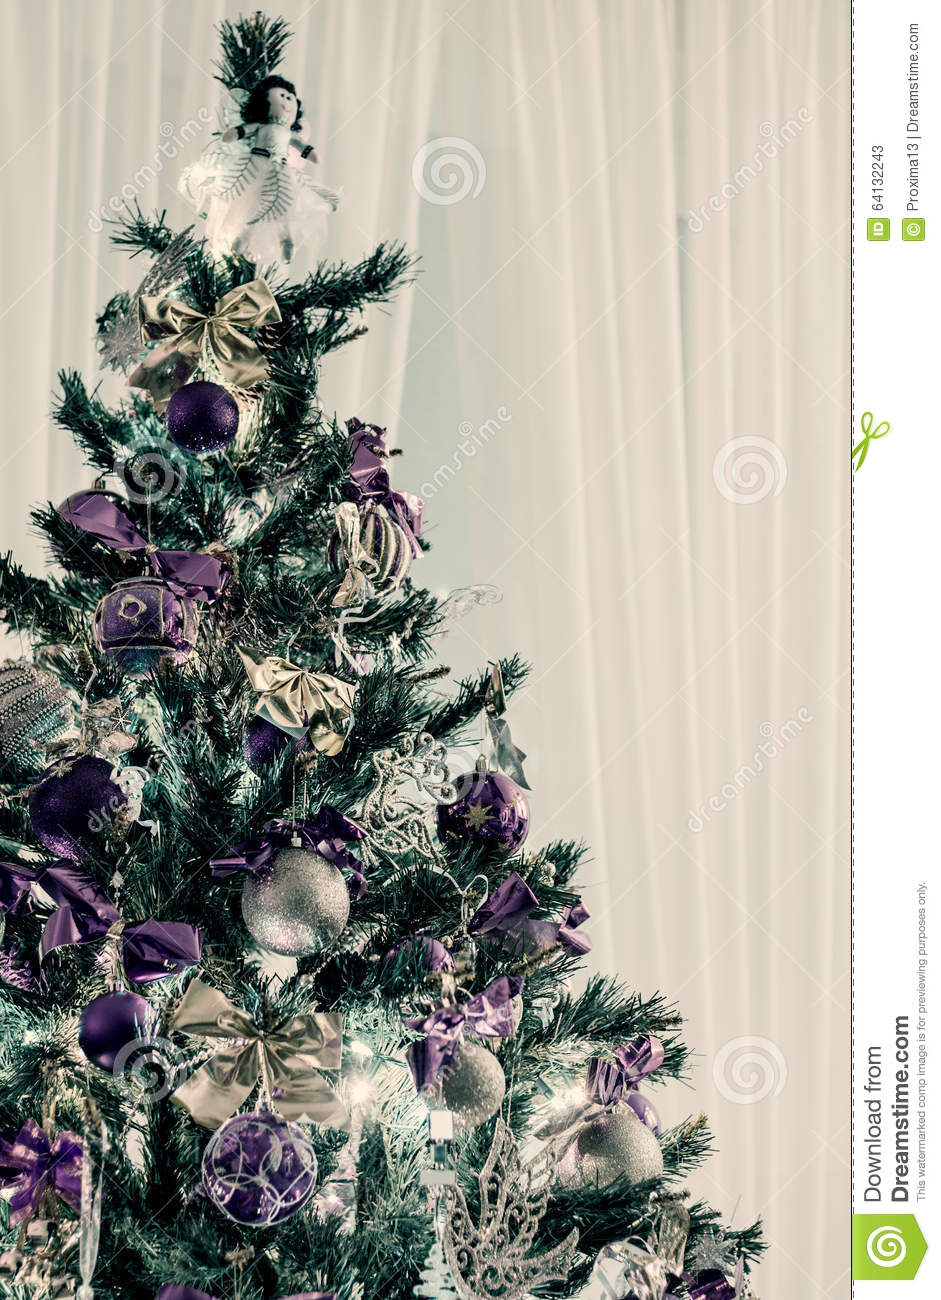 Decorated Christmas Tree With Purple And Gold Ribbons And Balloons Stock Image Image Of Festive Golden 64132243